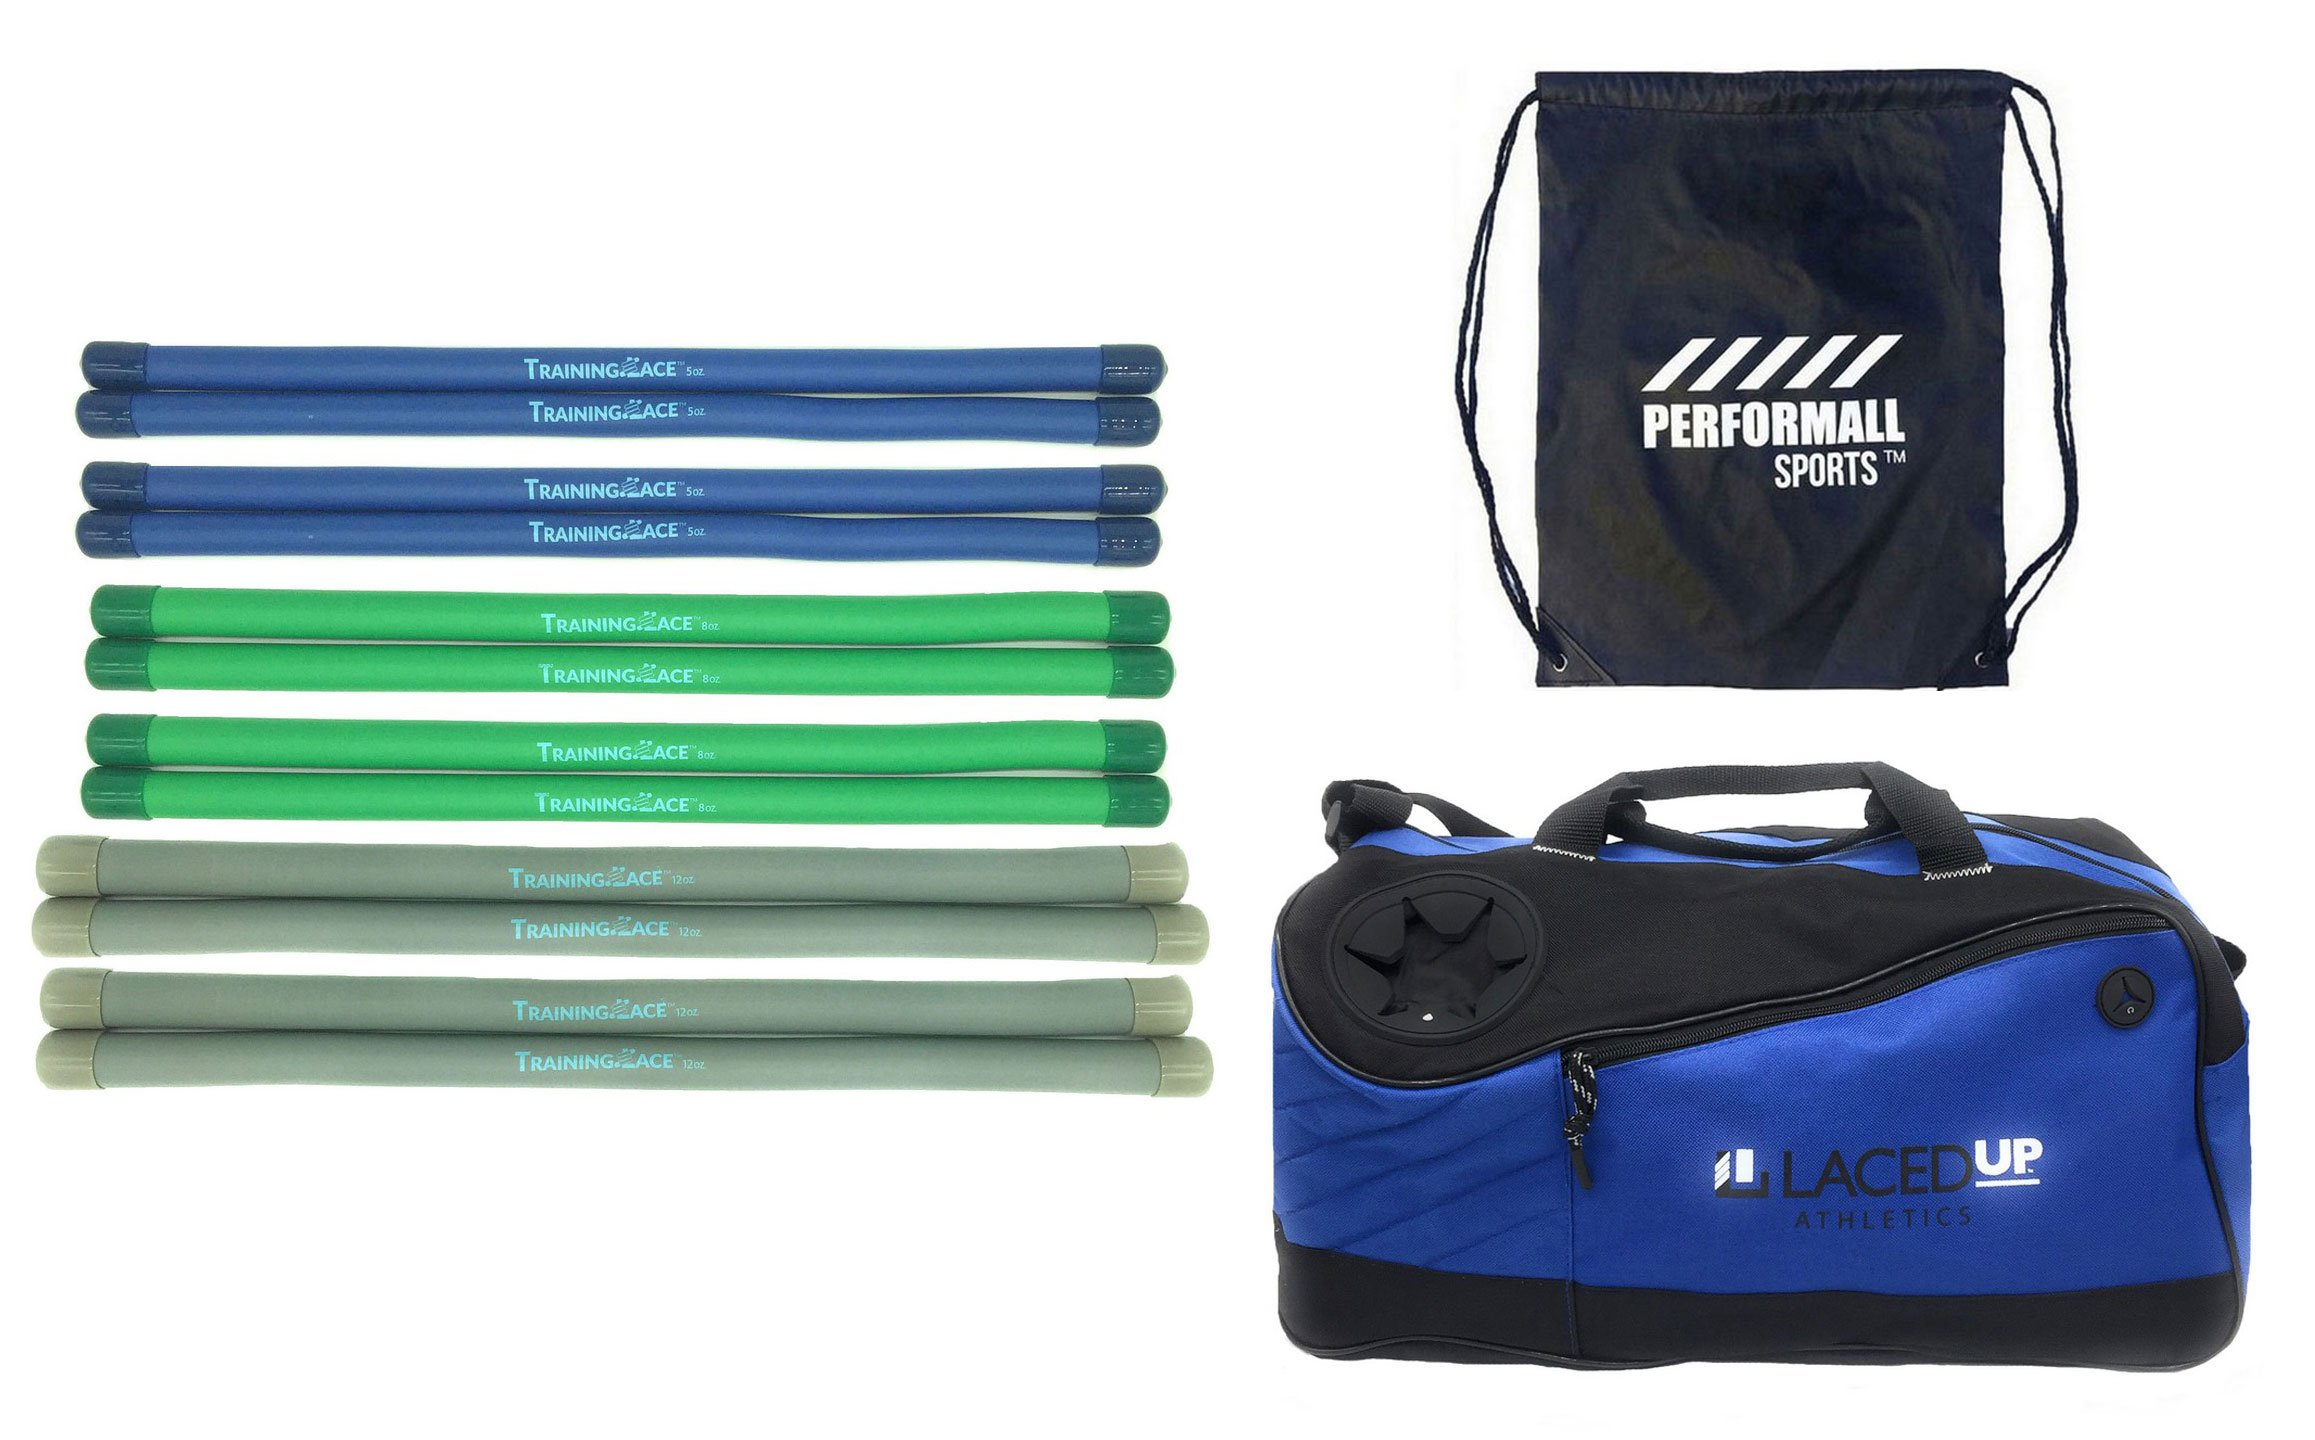 Training Lace Lacrosse Team Pack Combo: 4 of 5oz, 8oz and 12oz plus 1 Duffle Bag Lacedup Athletics TrainingLace bundled with 1 Performall Sport Bag